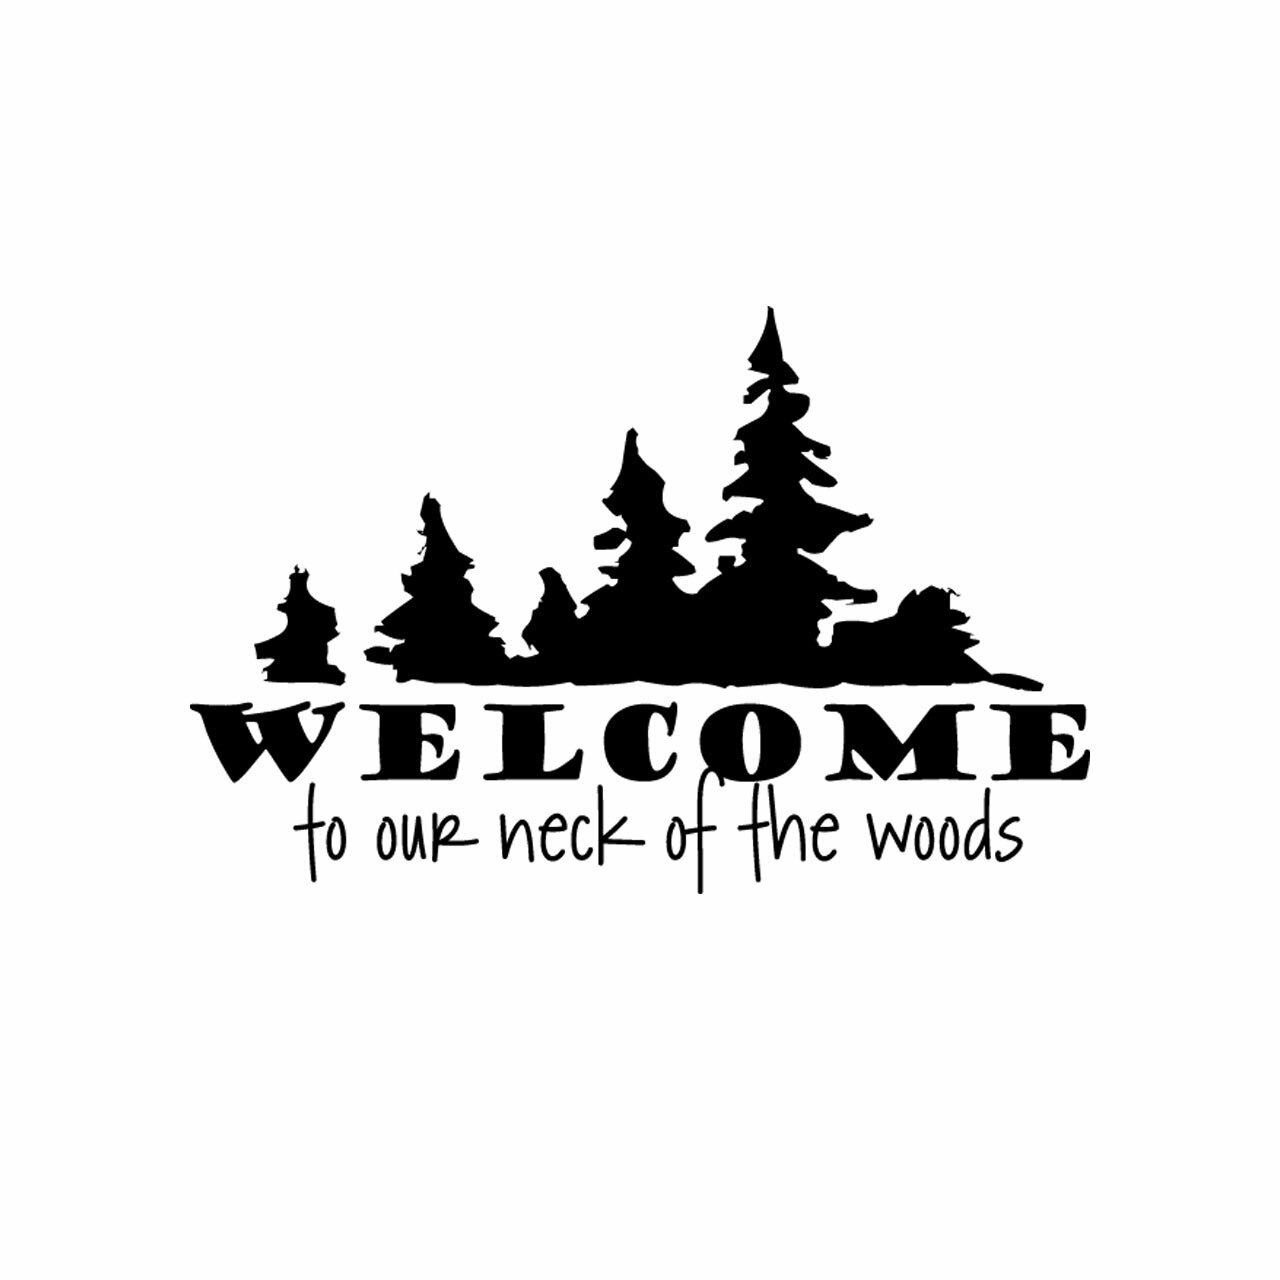 Welcome to our neck of the woods written in black on a white background